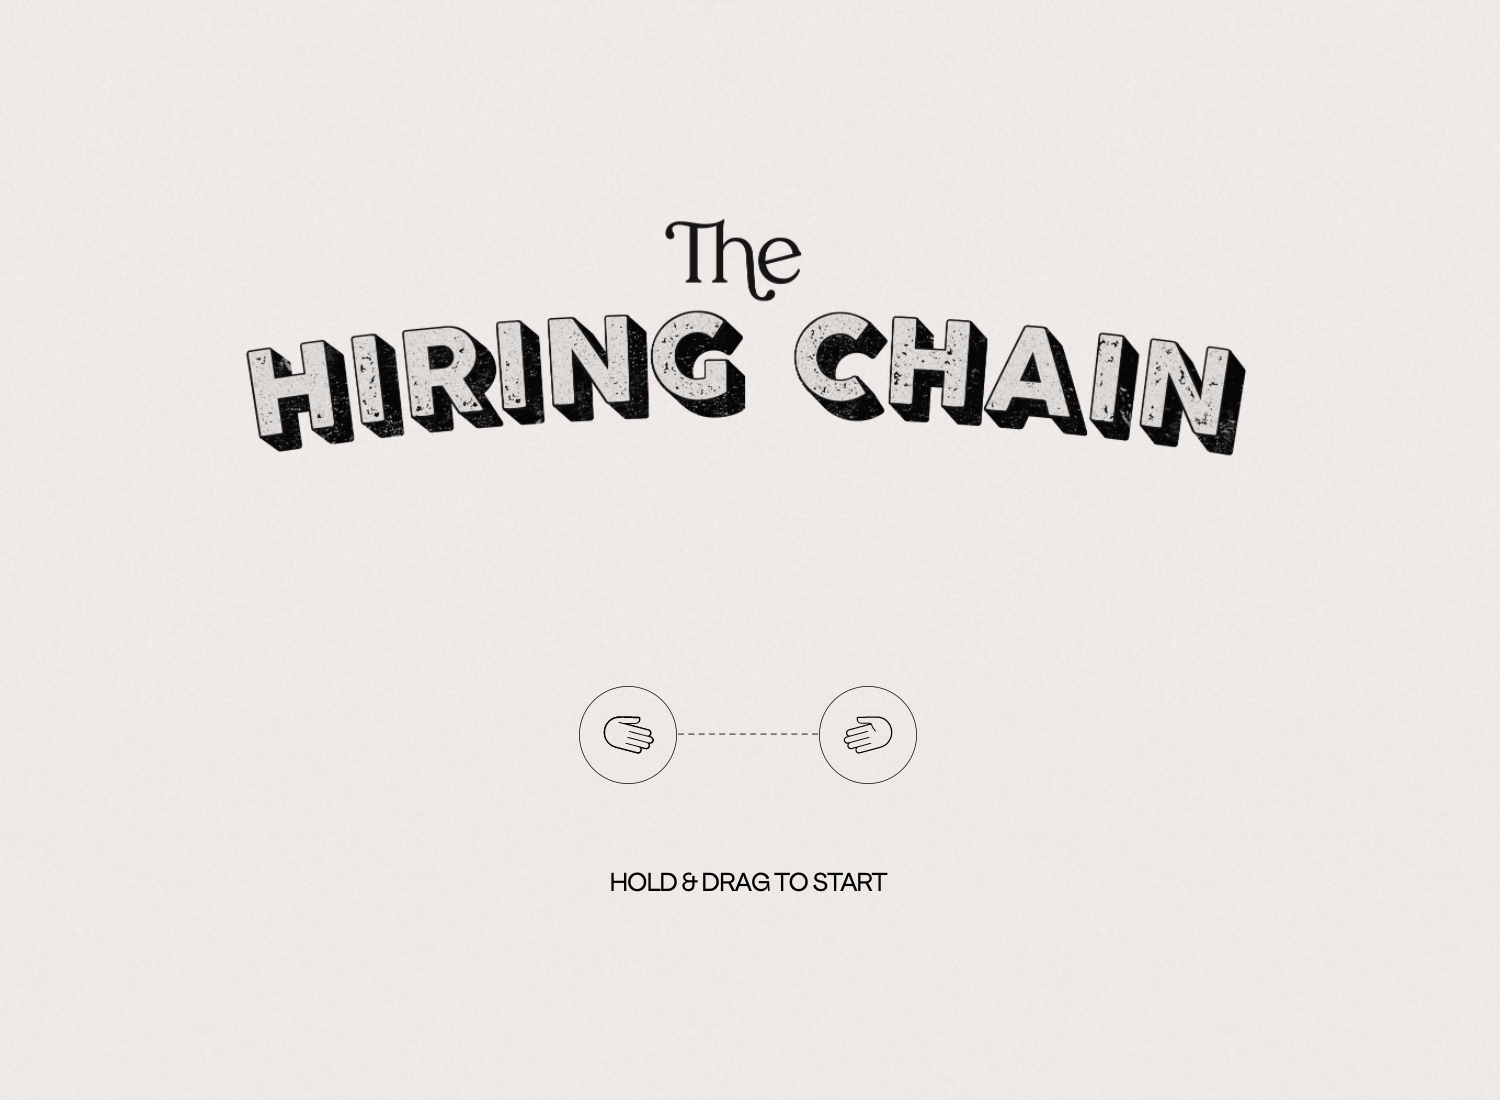 Website backgrounds - The Hiring Chain